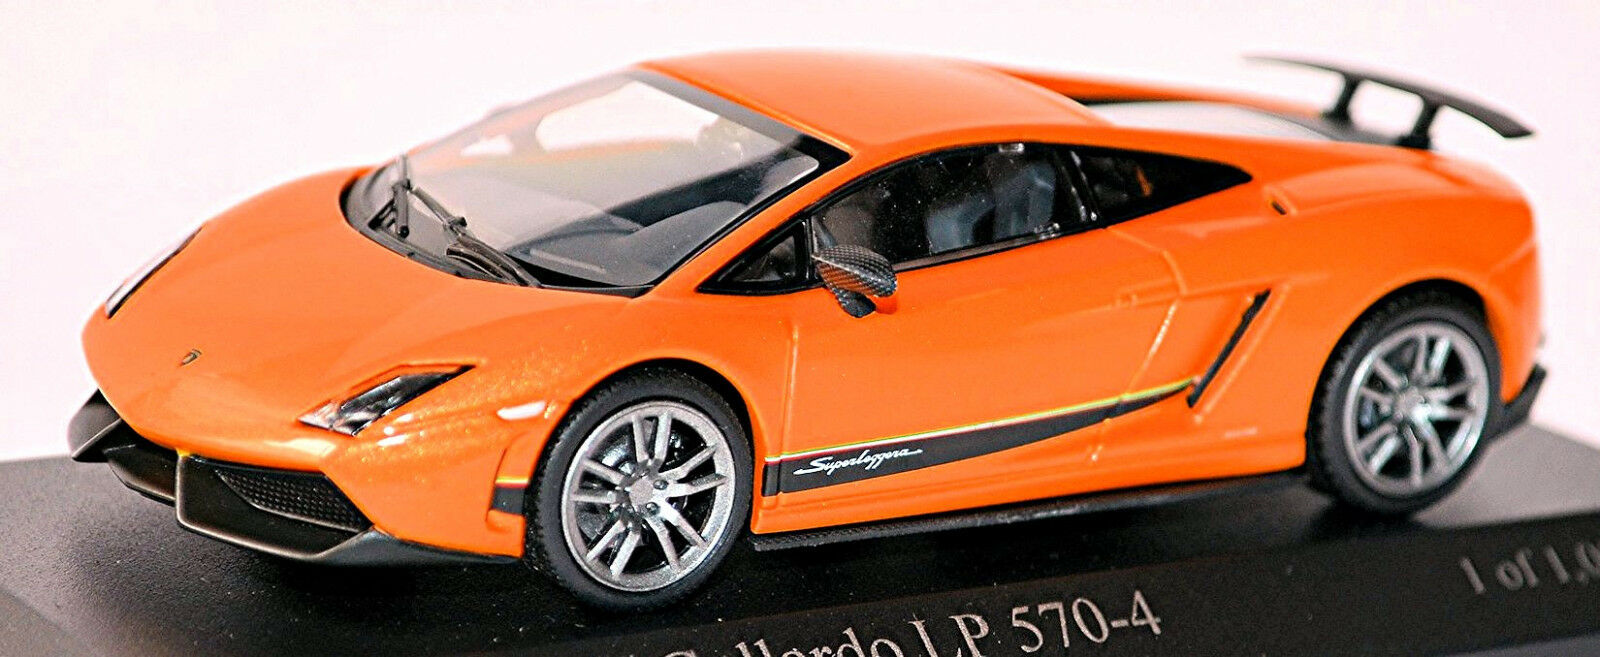 Lamborghini Gallardo LP 570-4 Superleggera 2012-14 orange Métallique 1 43